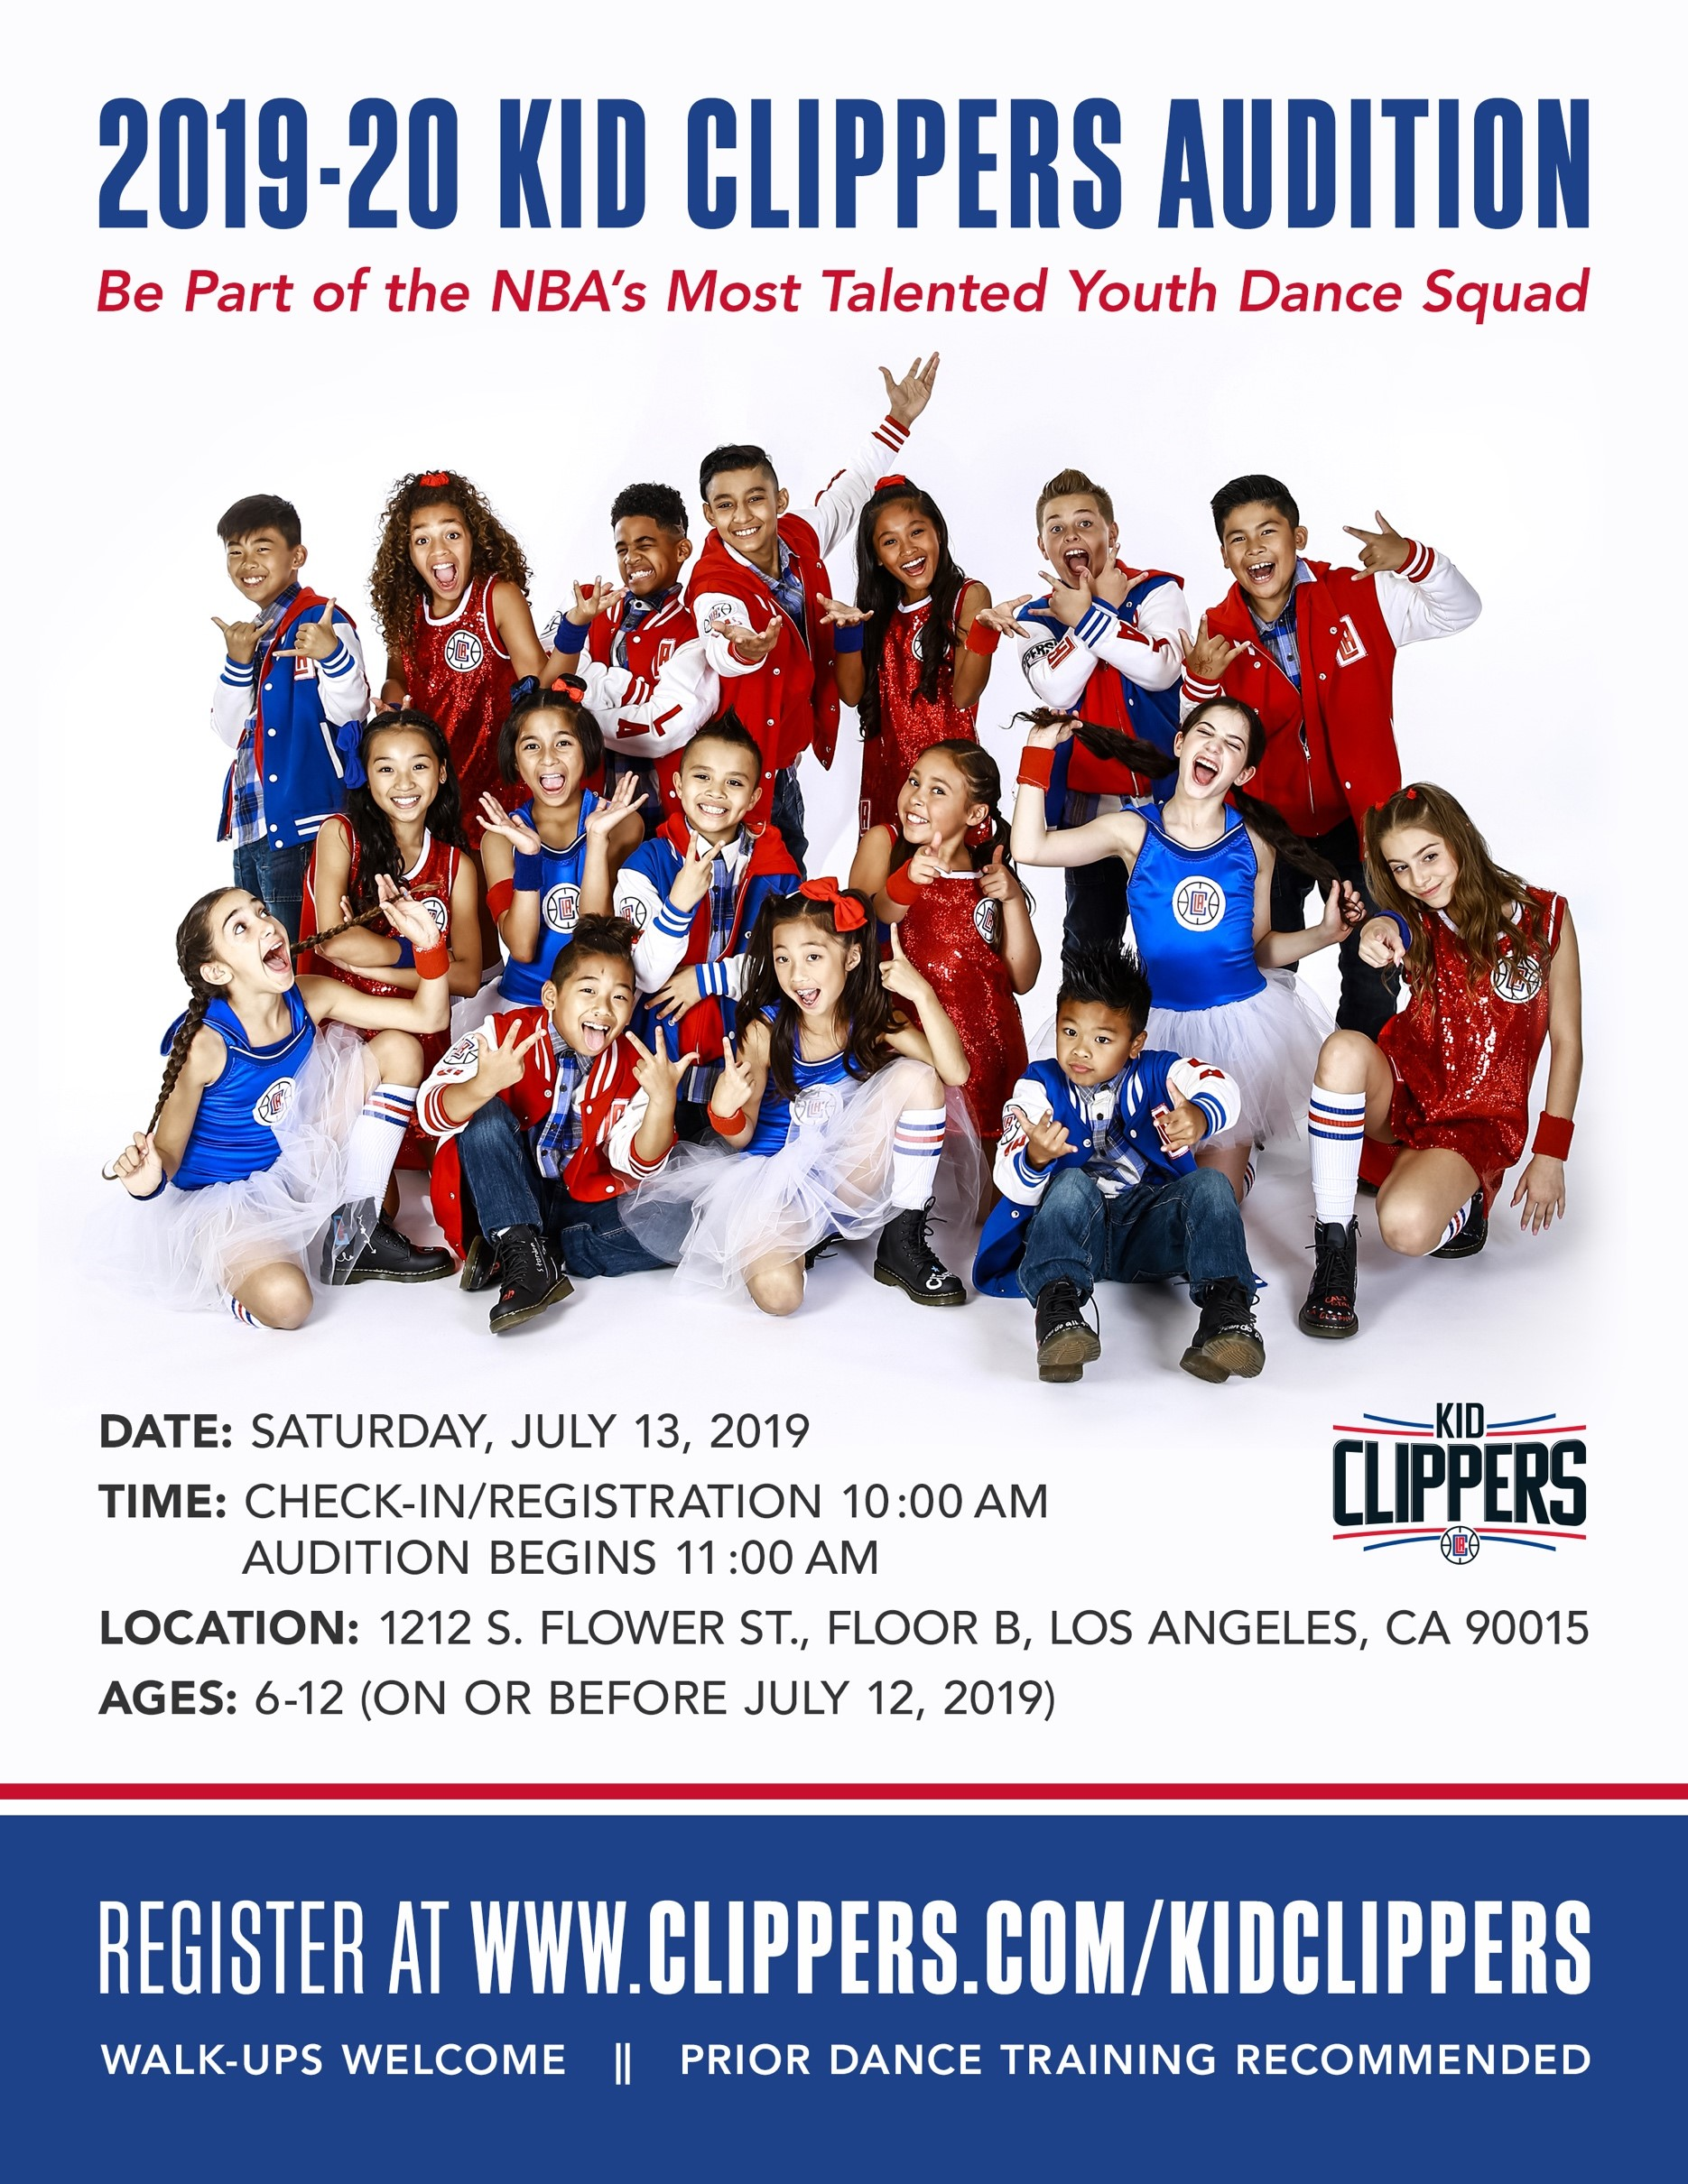 Kid Clippers 2019-20 Auditions